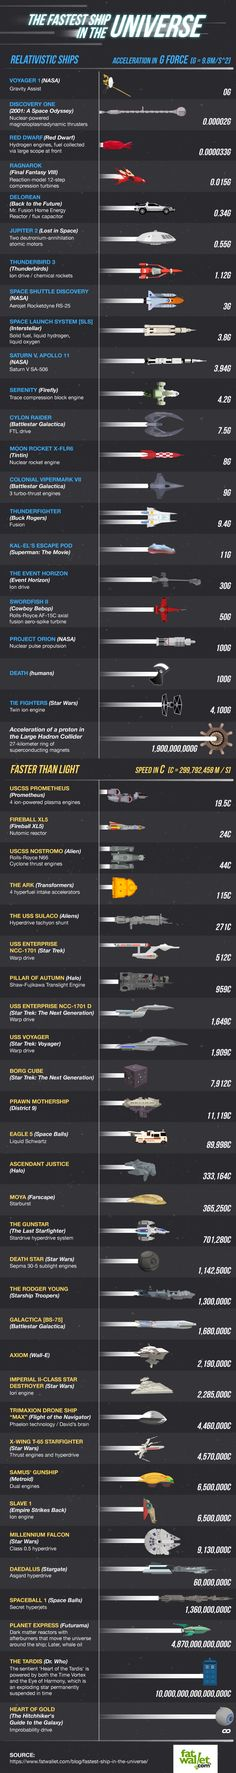 Fastest Ship In The Universe Infographic Puts Sci-Fi Creations Alongside Real Life Spacecraft